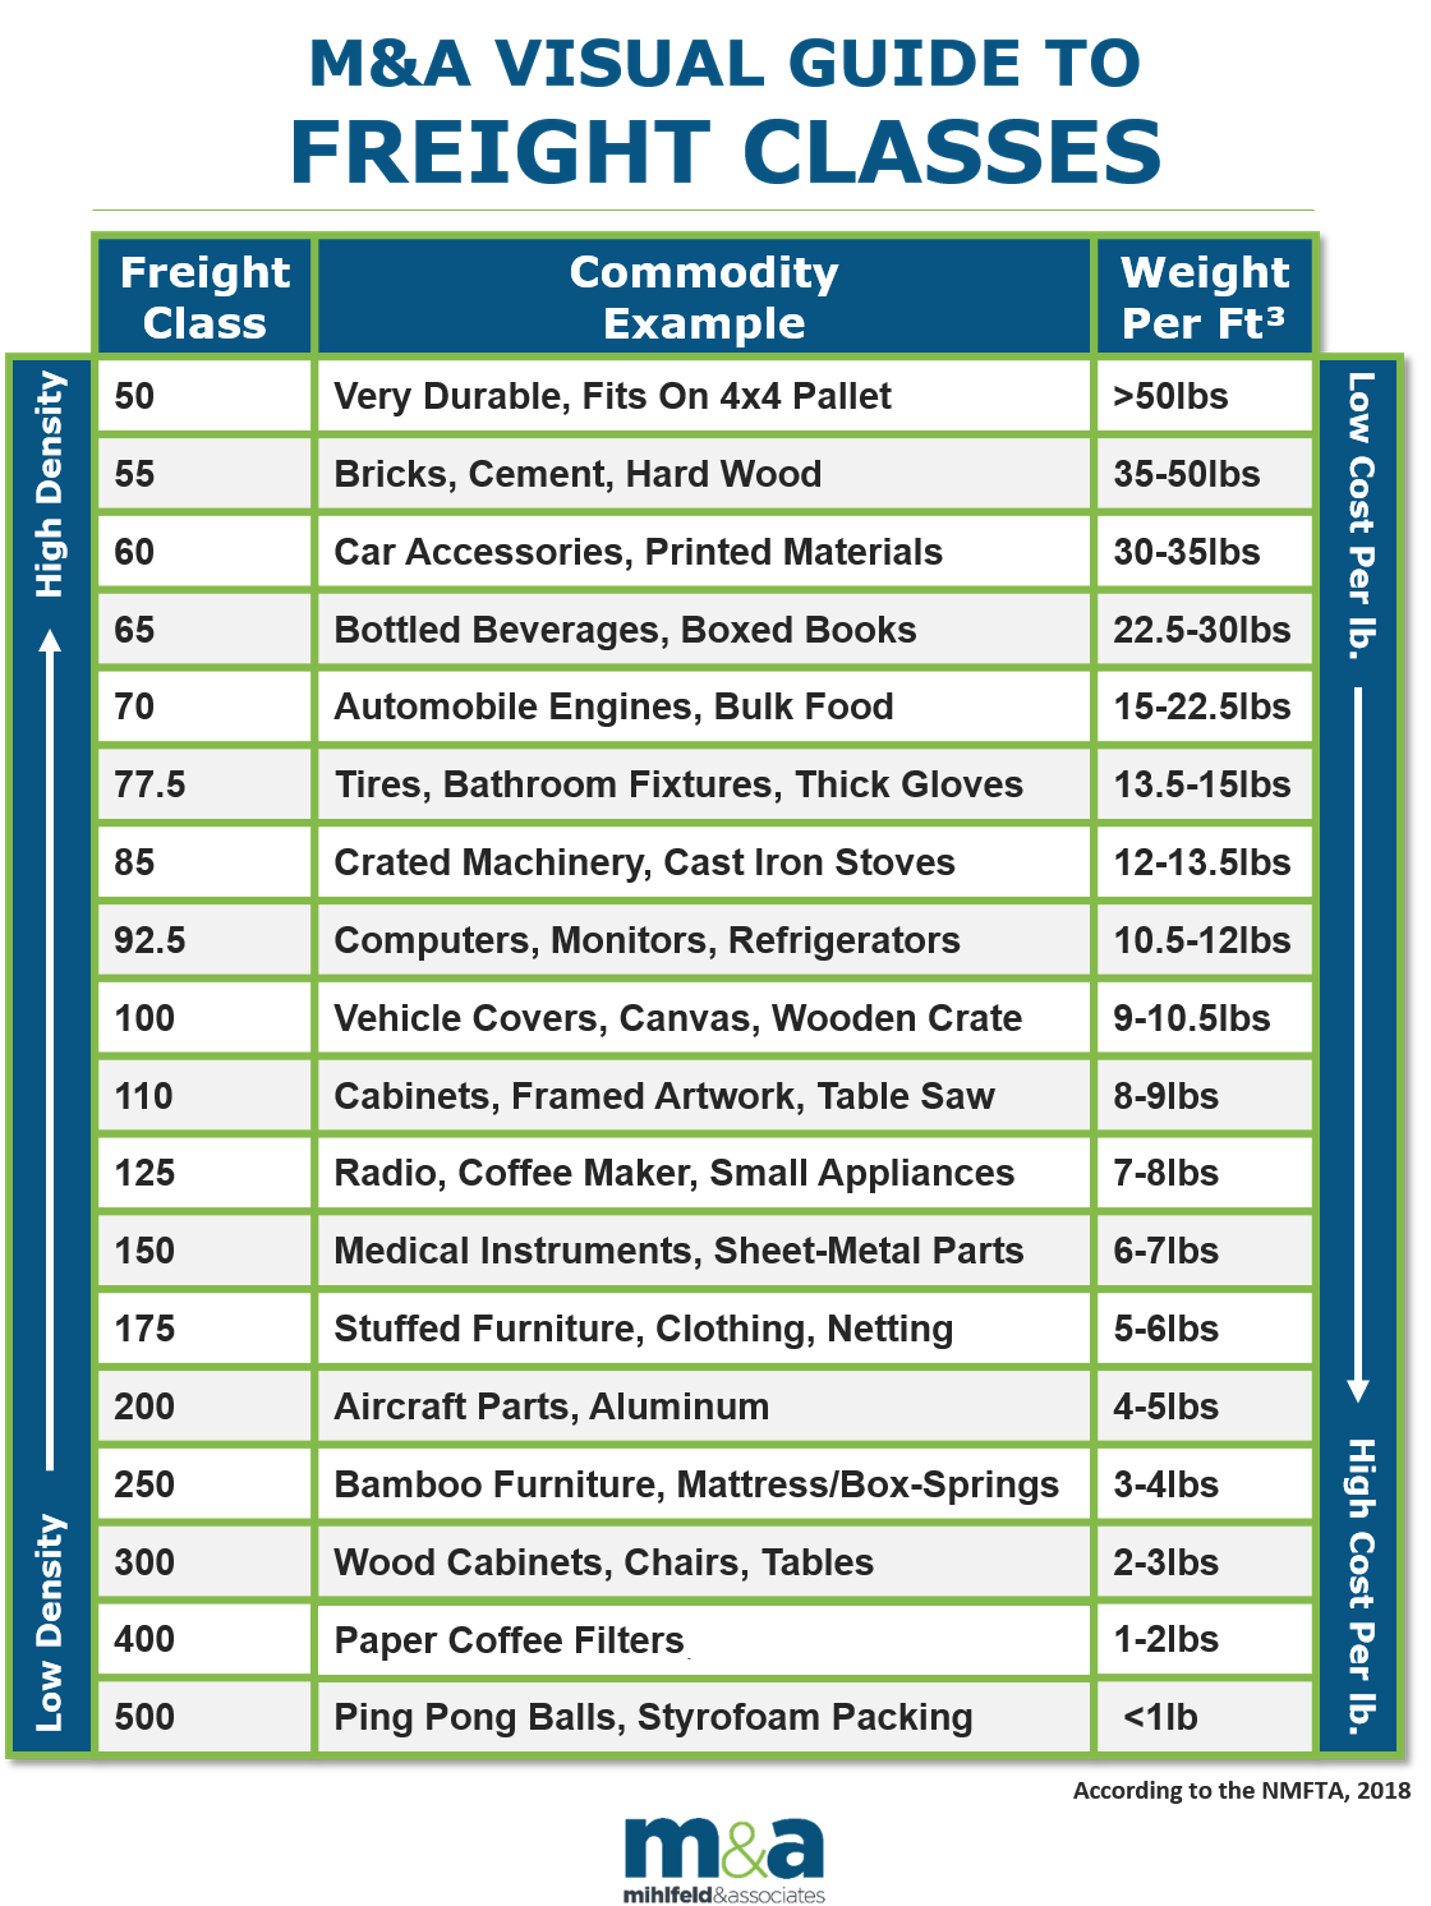 Freight Classification